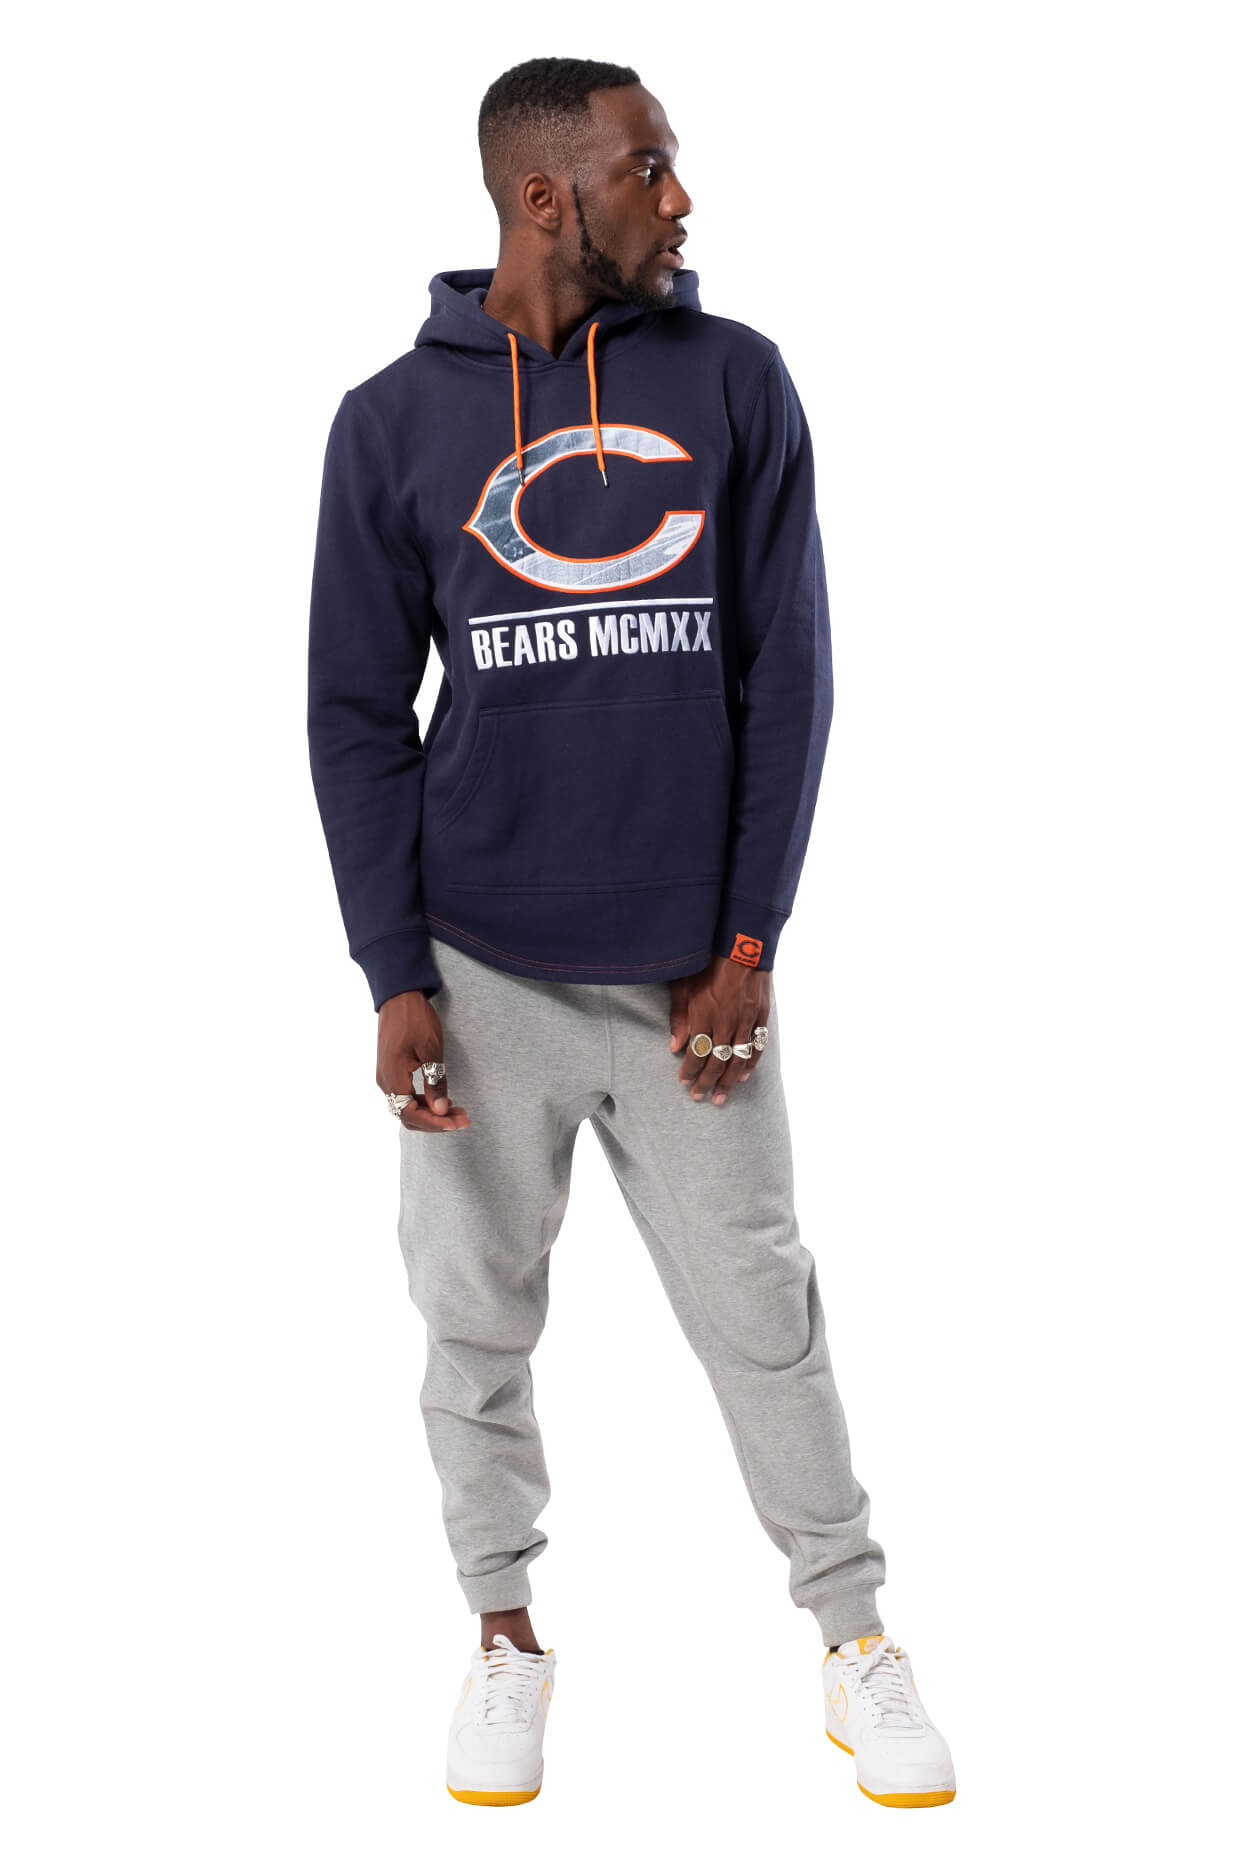 NFL Chicago Bears Men's Embroidered Hoodie|Chicago Bears